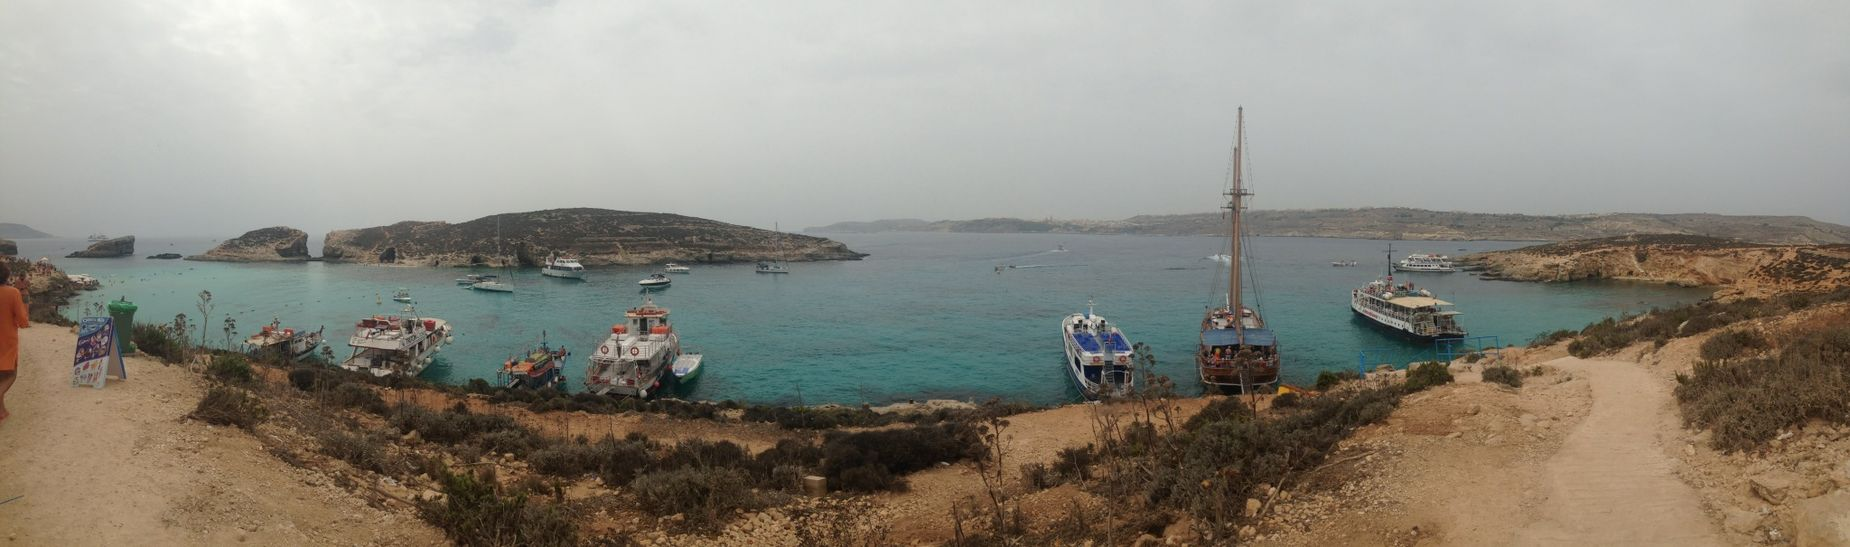 Malta Blue Lagoon The Blue Lagoon, Comino Holidays